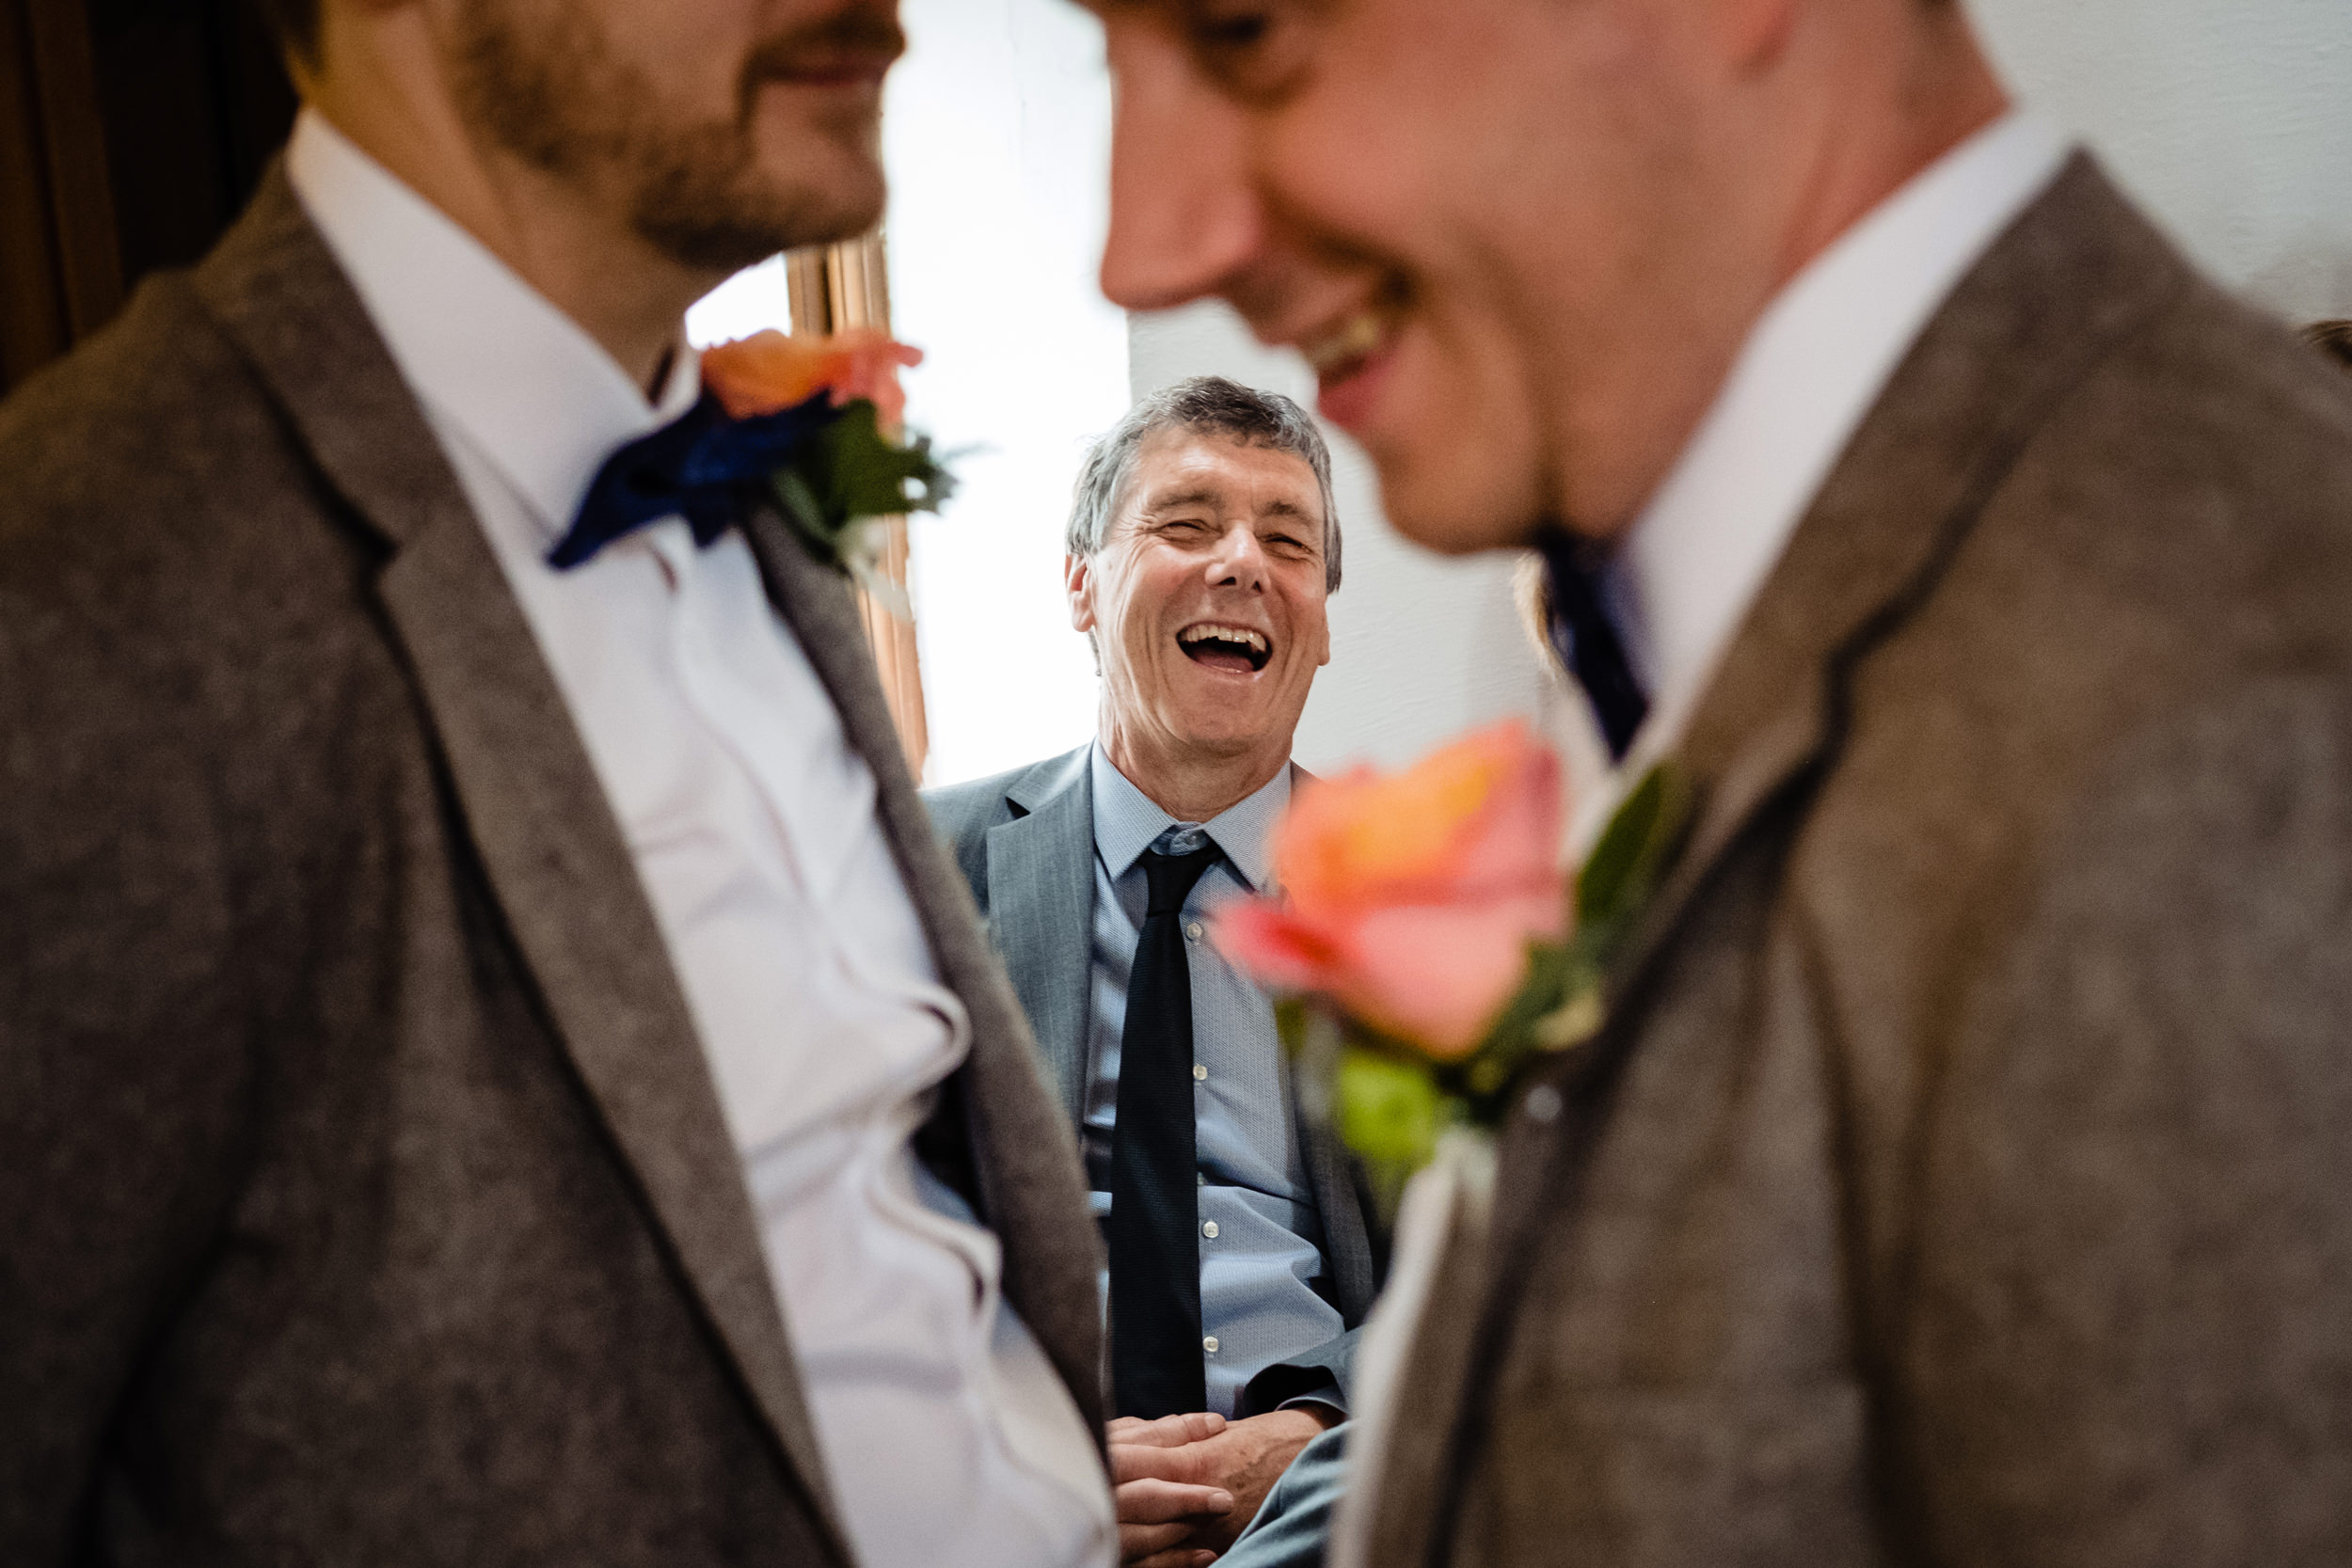 grooms father laughs at him before the ceremony. wildwood and eden wedding photography by emma and rich.